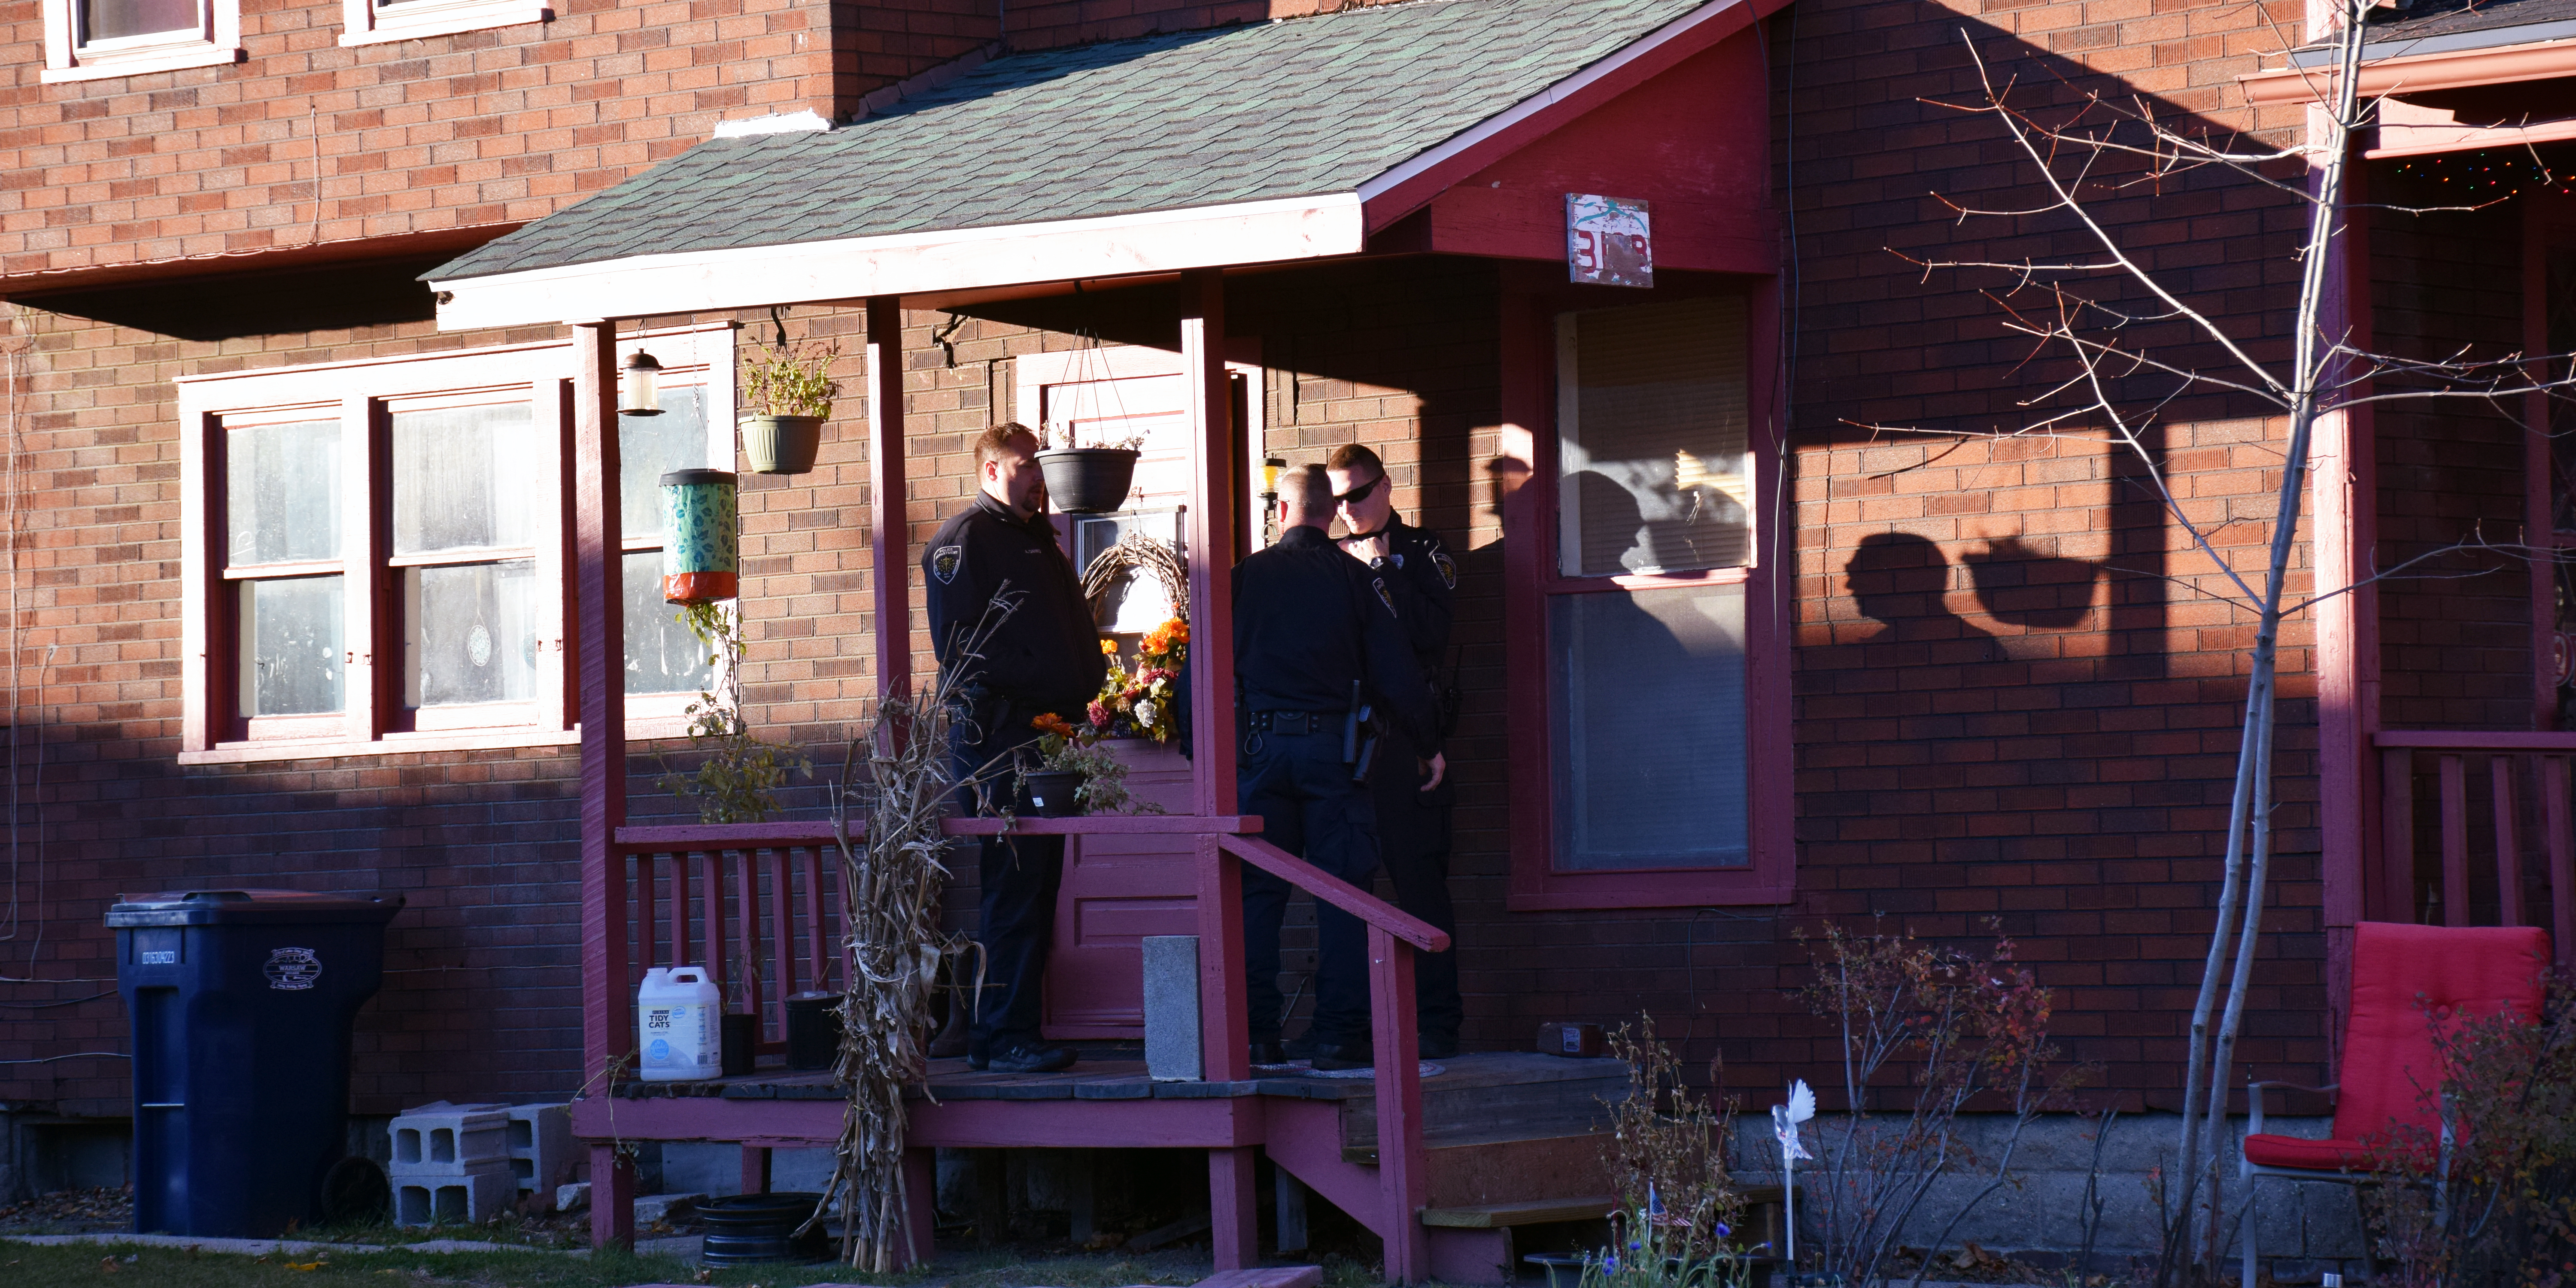 Officers on the scene of the stabbing that occurred Monday afternoon.